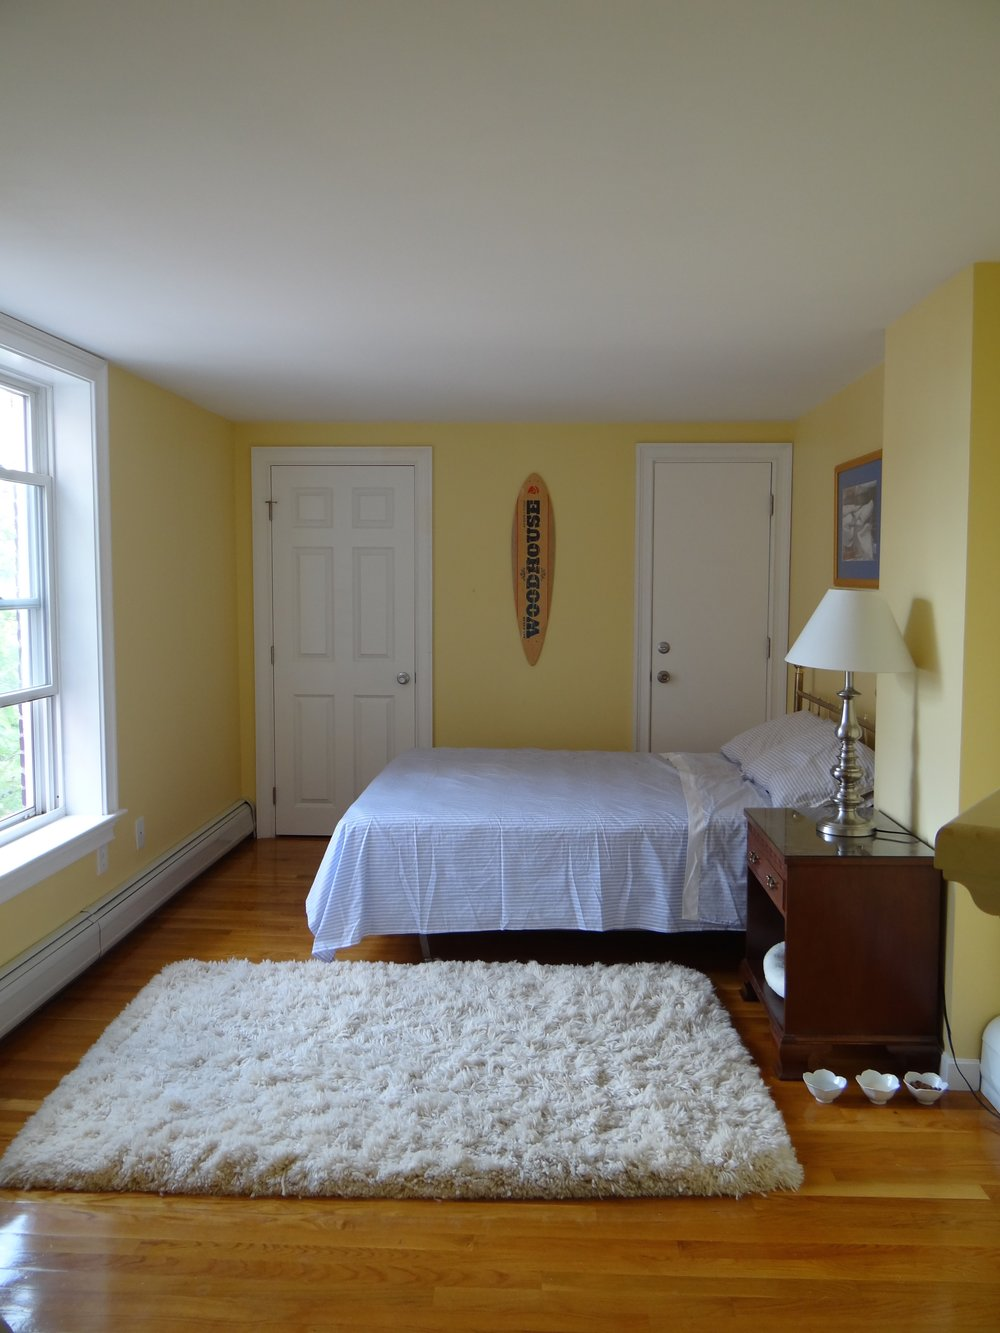 Bedroom V1 - yellow and hand-me-downs.